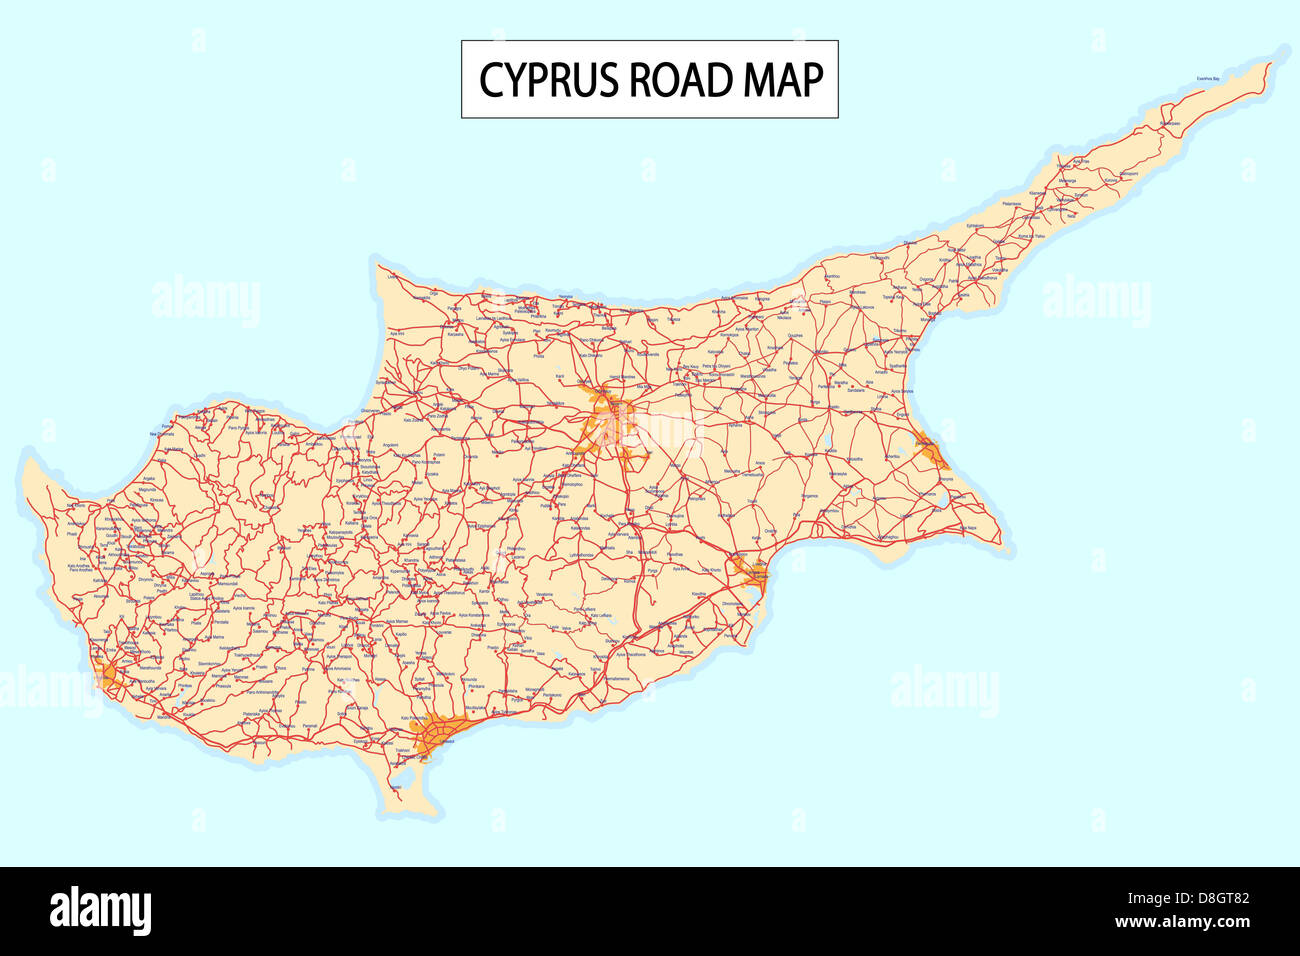 Cyprus road map Stock Photo 56918626 Alamy